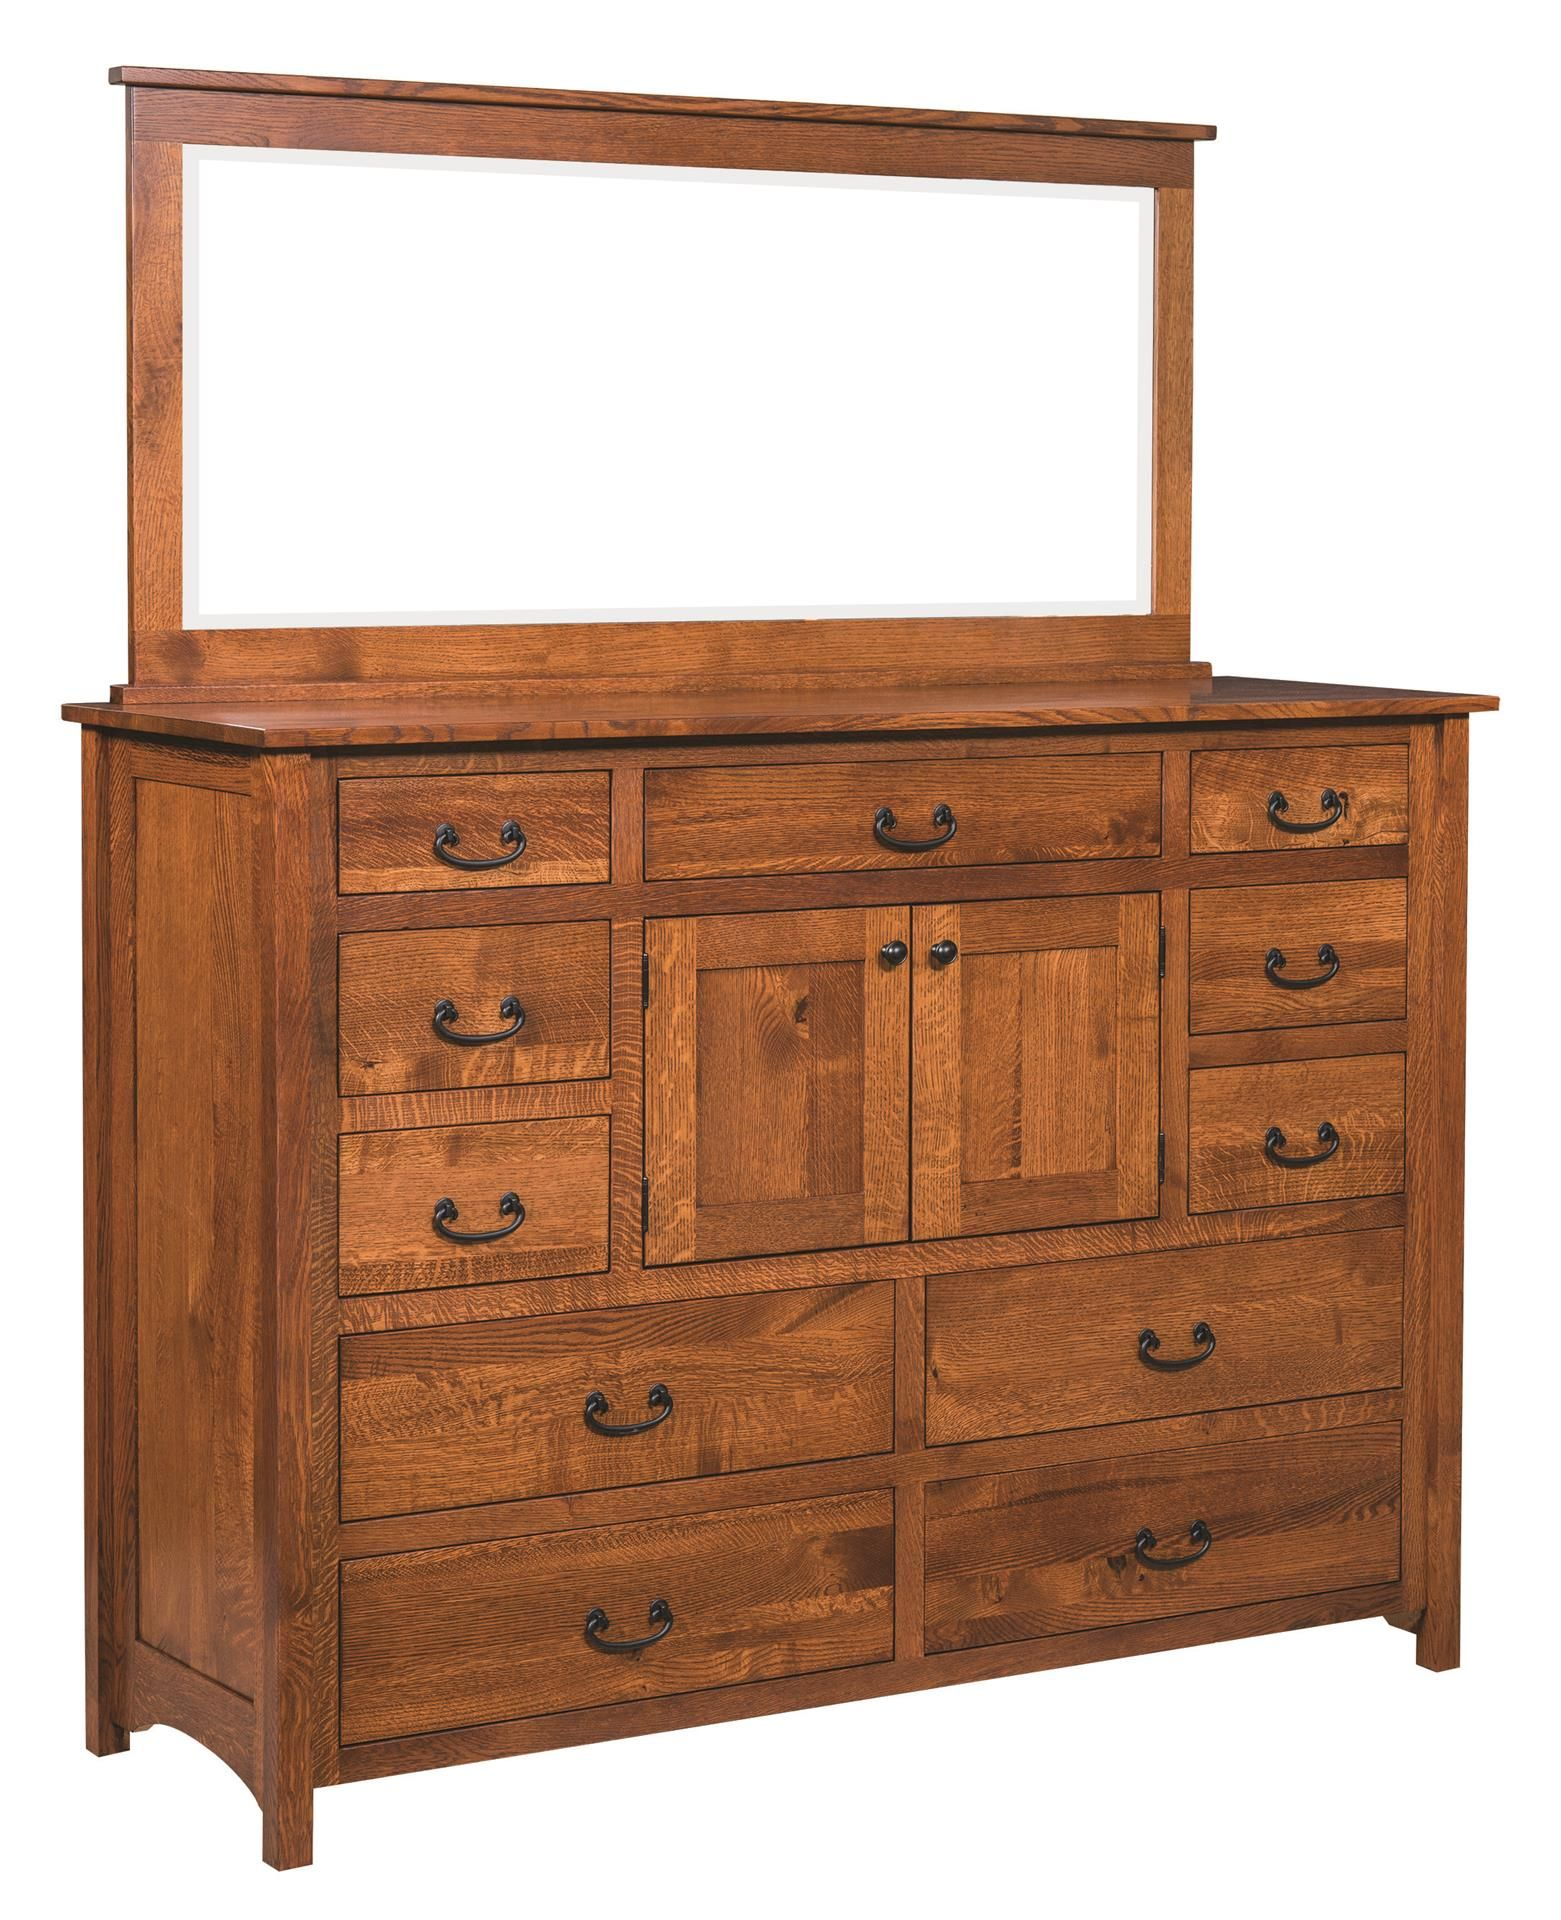 Amish Np Mission Deluxe Dresser With Optional Mirror Diy Storage Ideas For Small Bedrooms Wood Projects Plans Easy Woodworking Projects